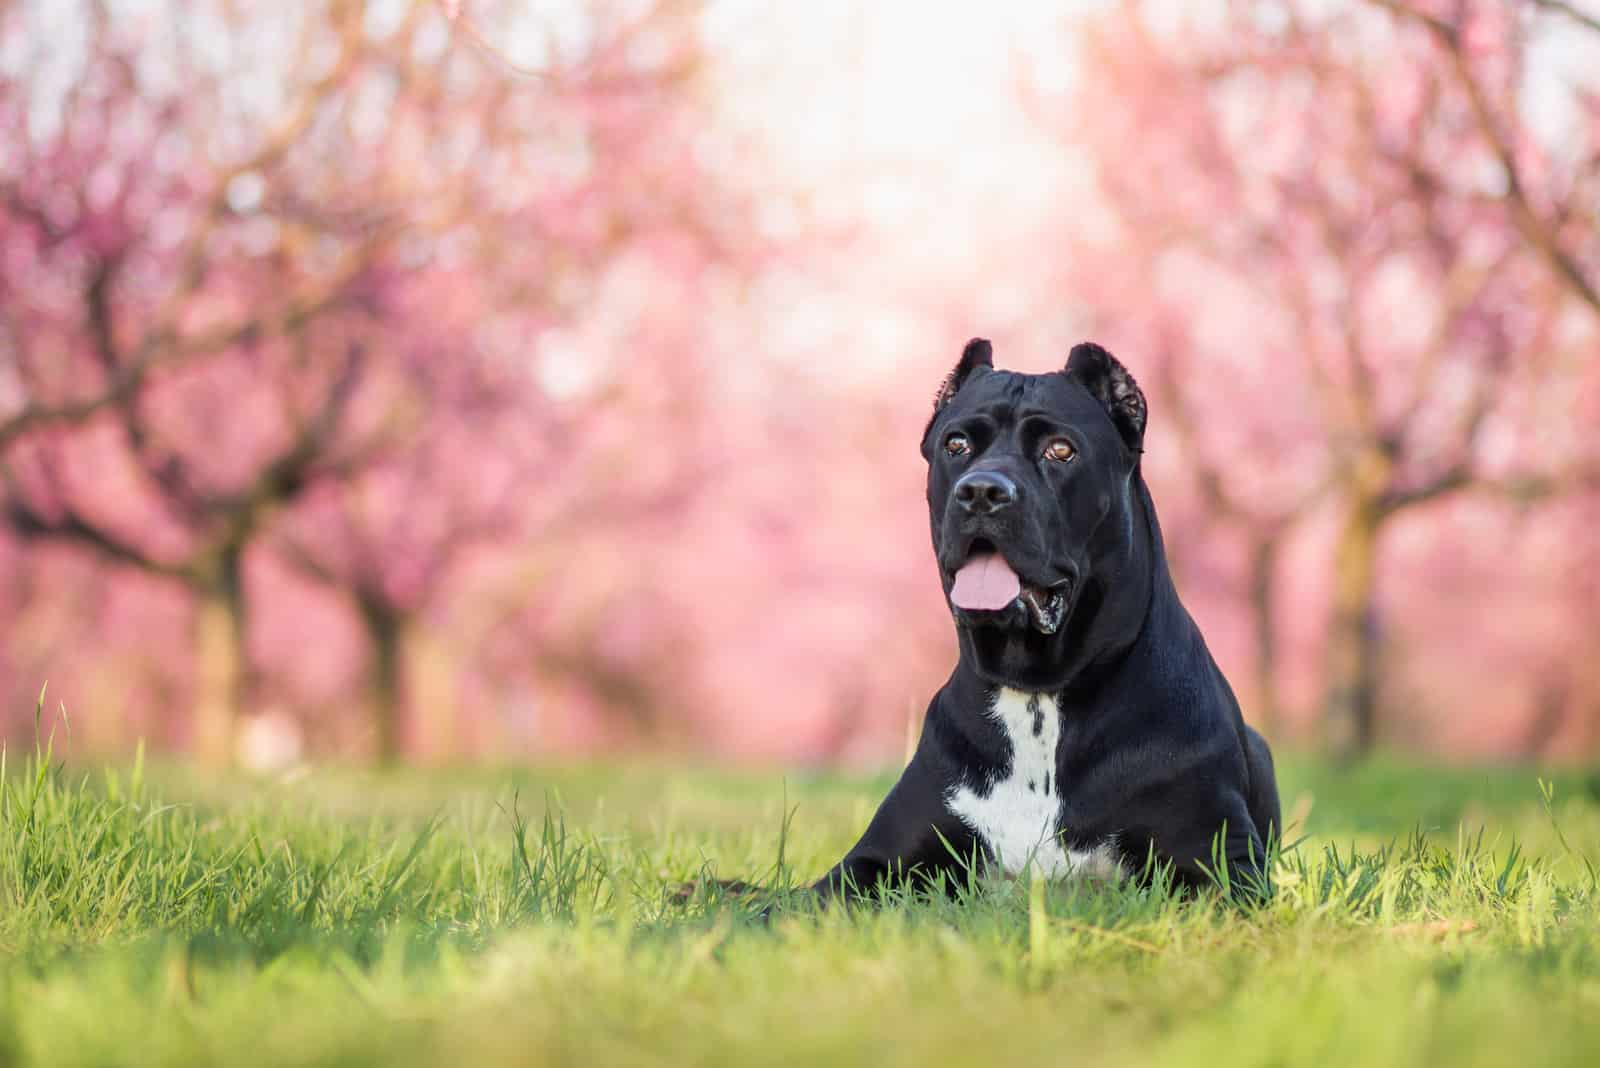 black cane corso in the blossoming park